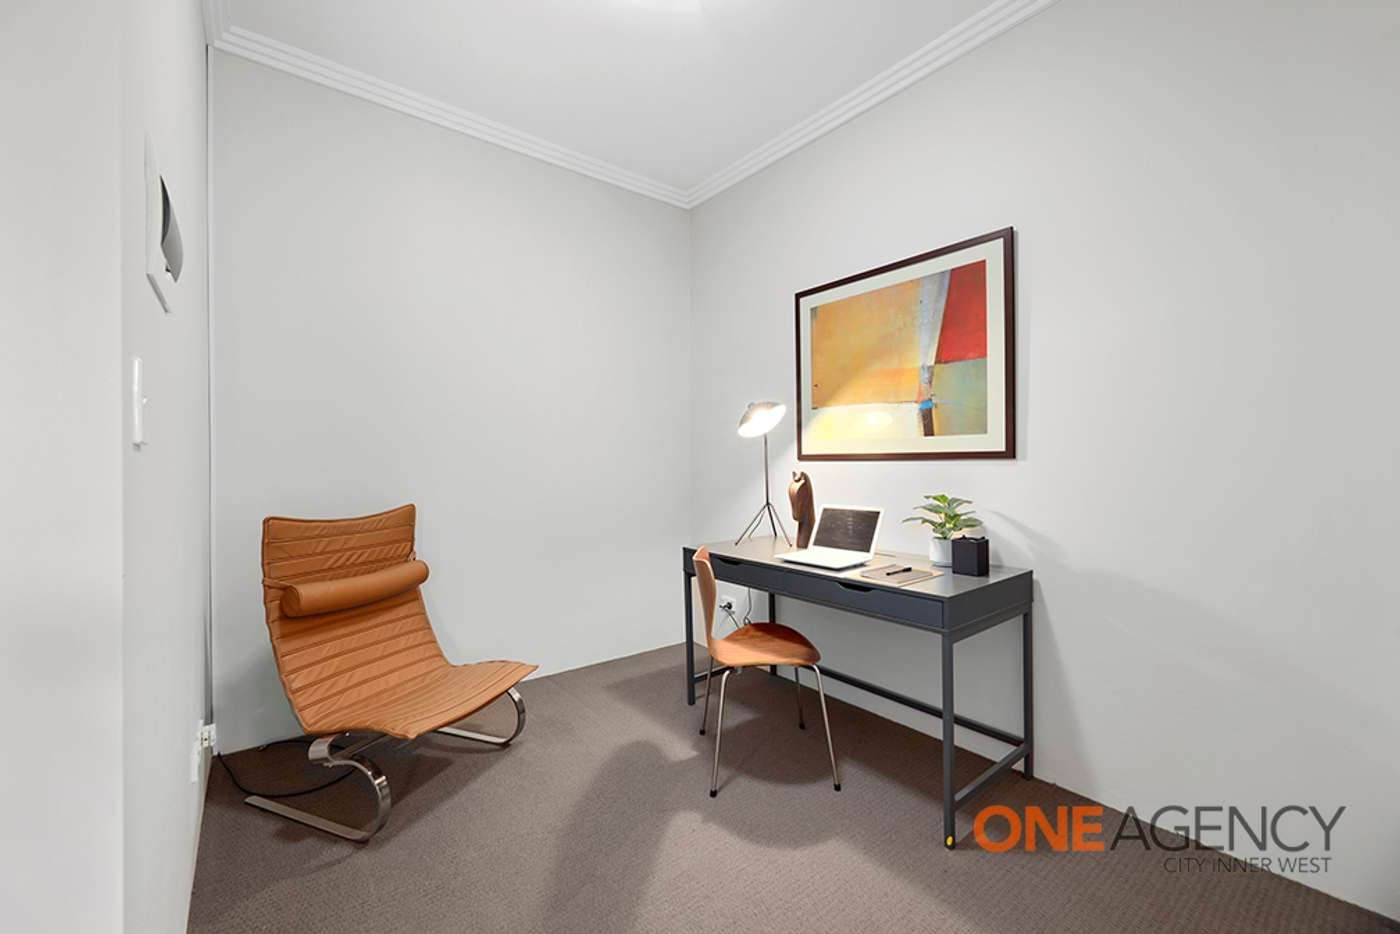 Fifth view of Homely apartment listing, 212/354 Church Street, Parramatta NSW 2150